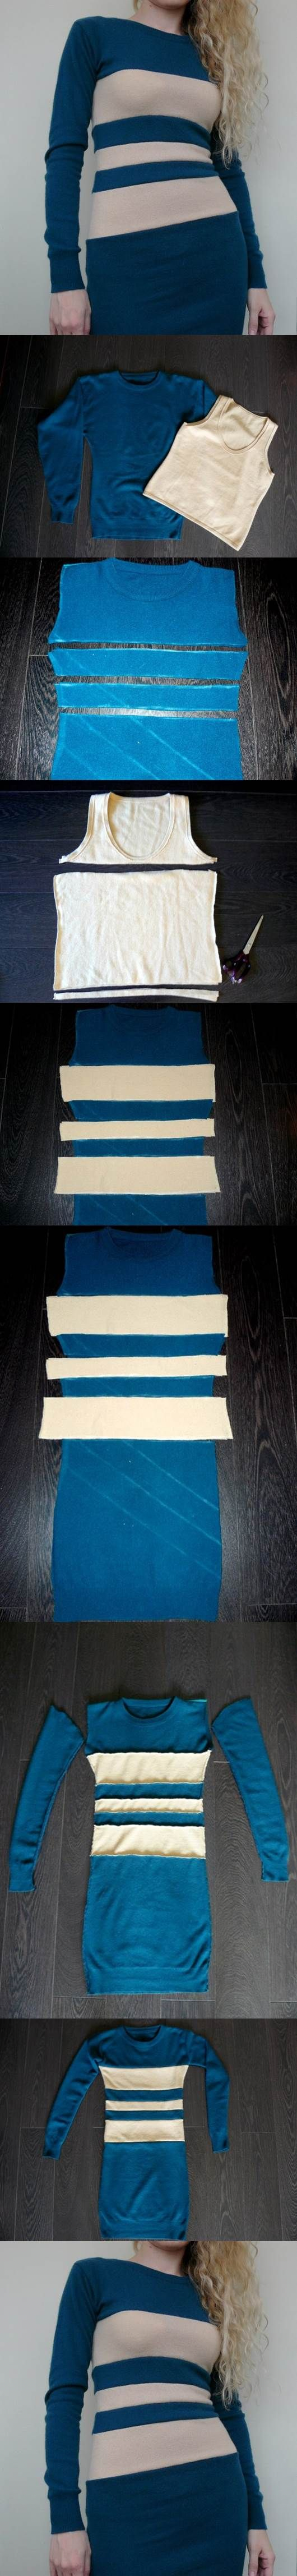 DIY Color Block Dress from Sweatshirt and Tank | iCreativeIdeas.com Like Us on Facebook ==> https://www.facebook.com/icreativeideas